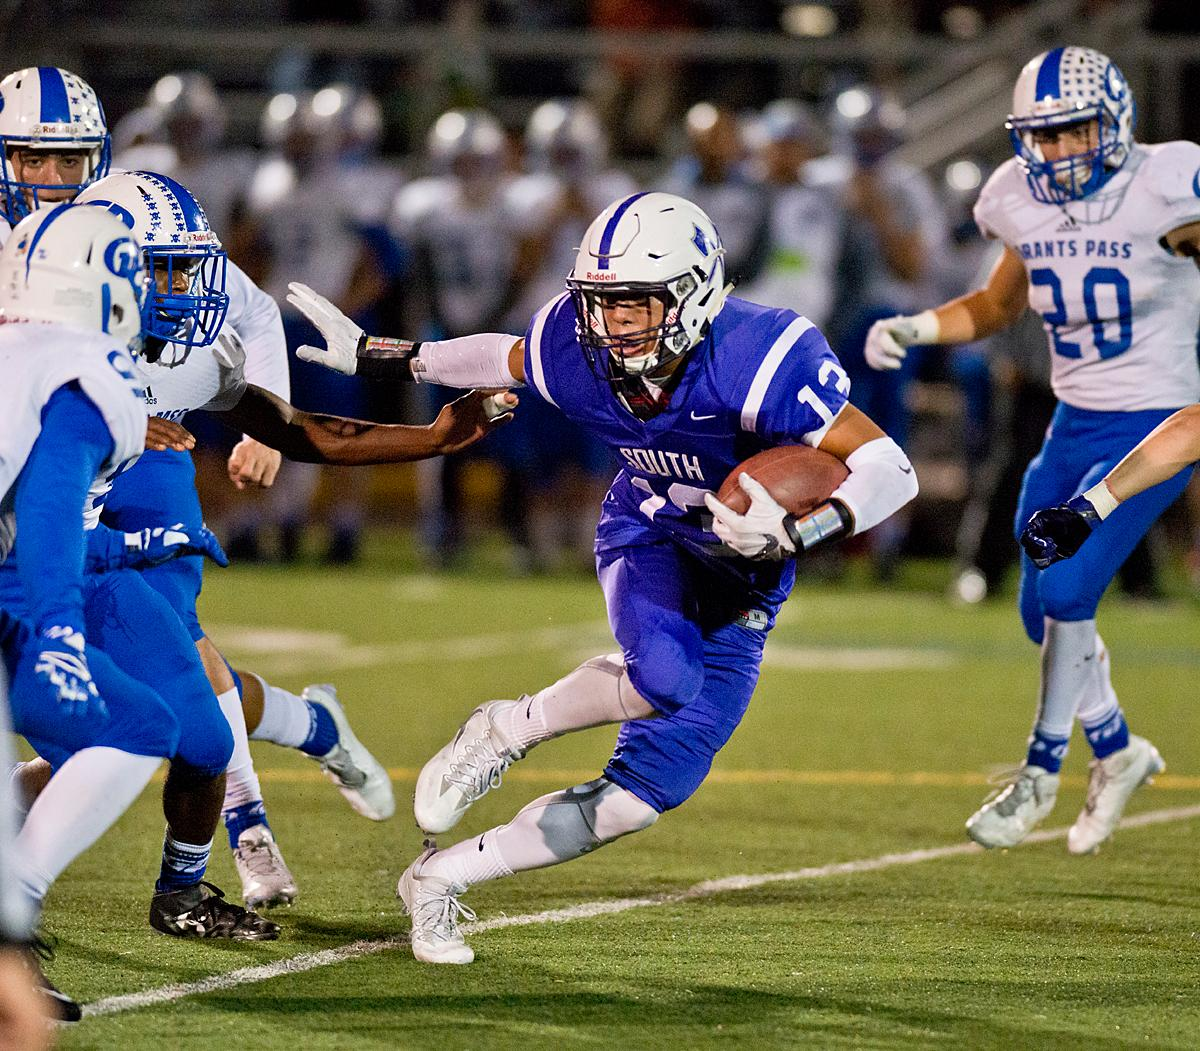 South Eugene Axemen wide receiver Myles Green-Richards (#13) attempts to evade the Grants Pass defense. Grants Pass defeated South 13-6 at South's homecoming game. Photo by Dan Morrison, Oregon News Lab